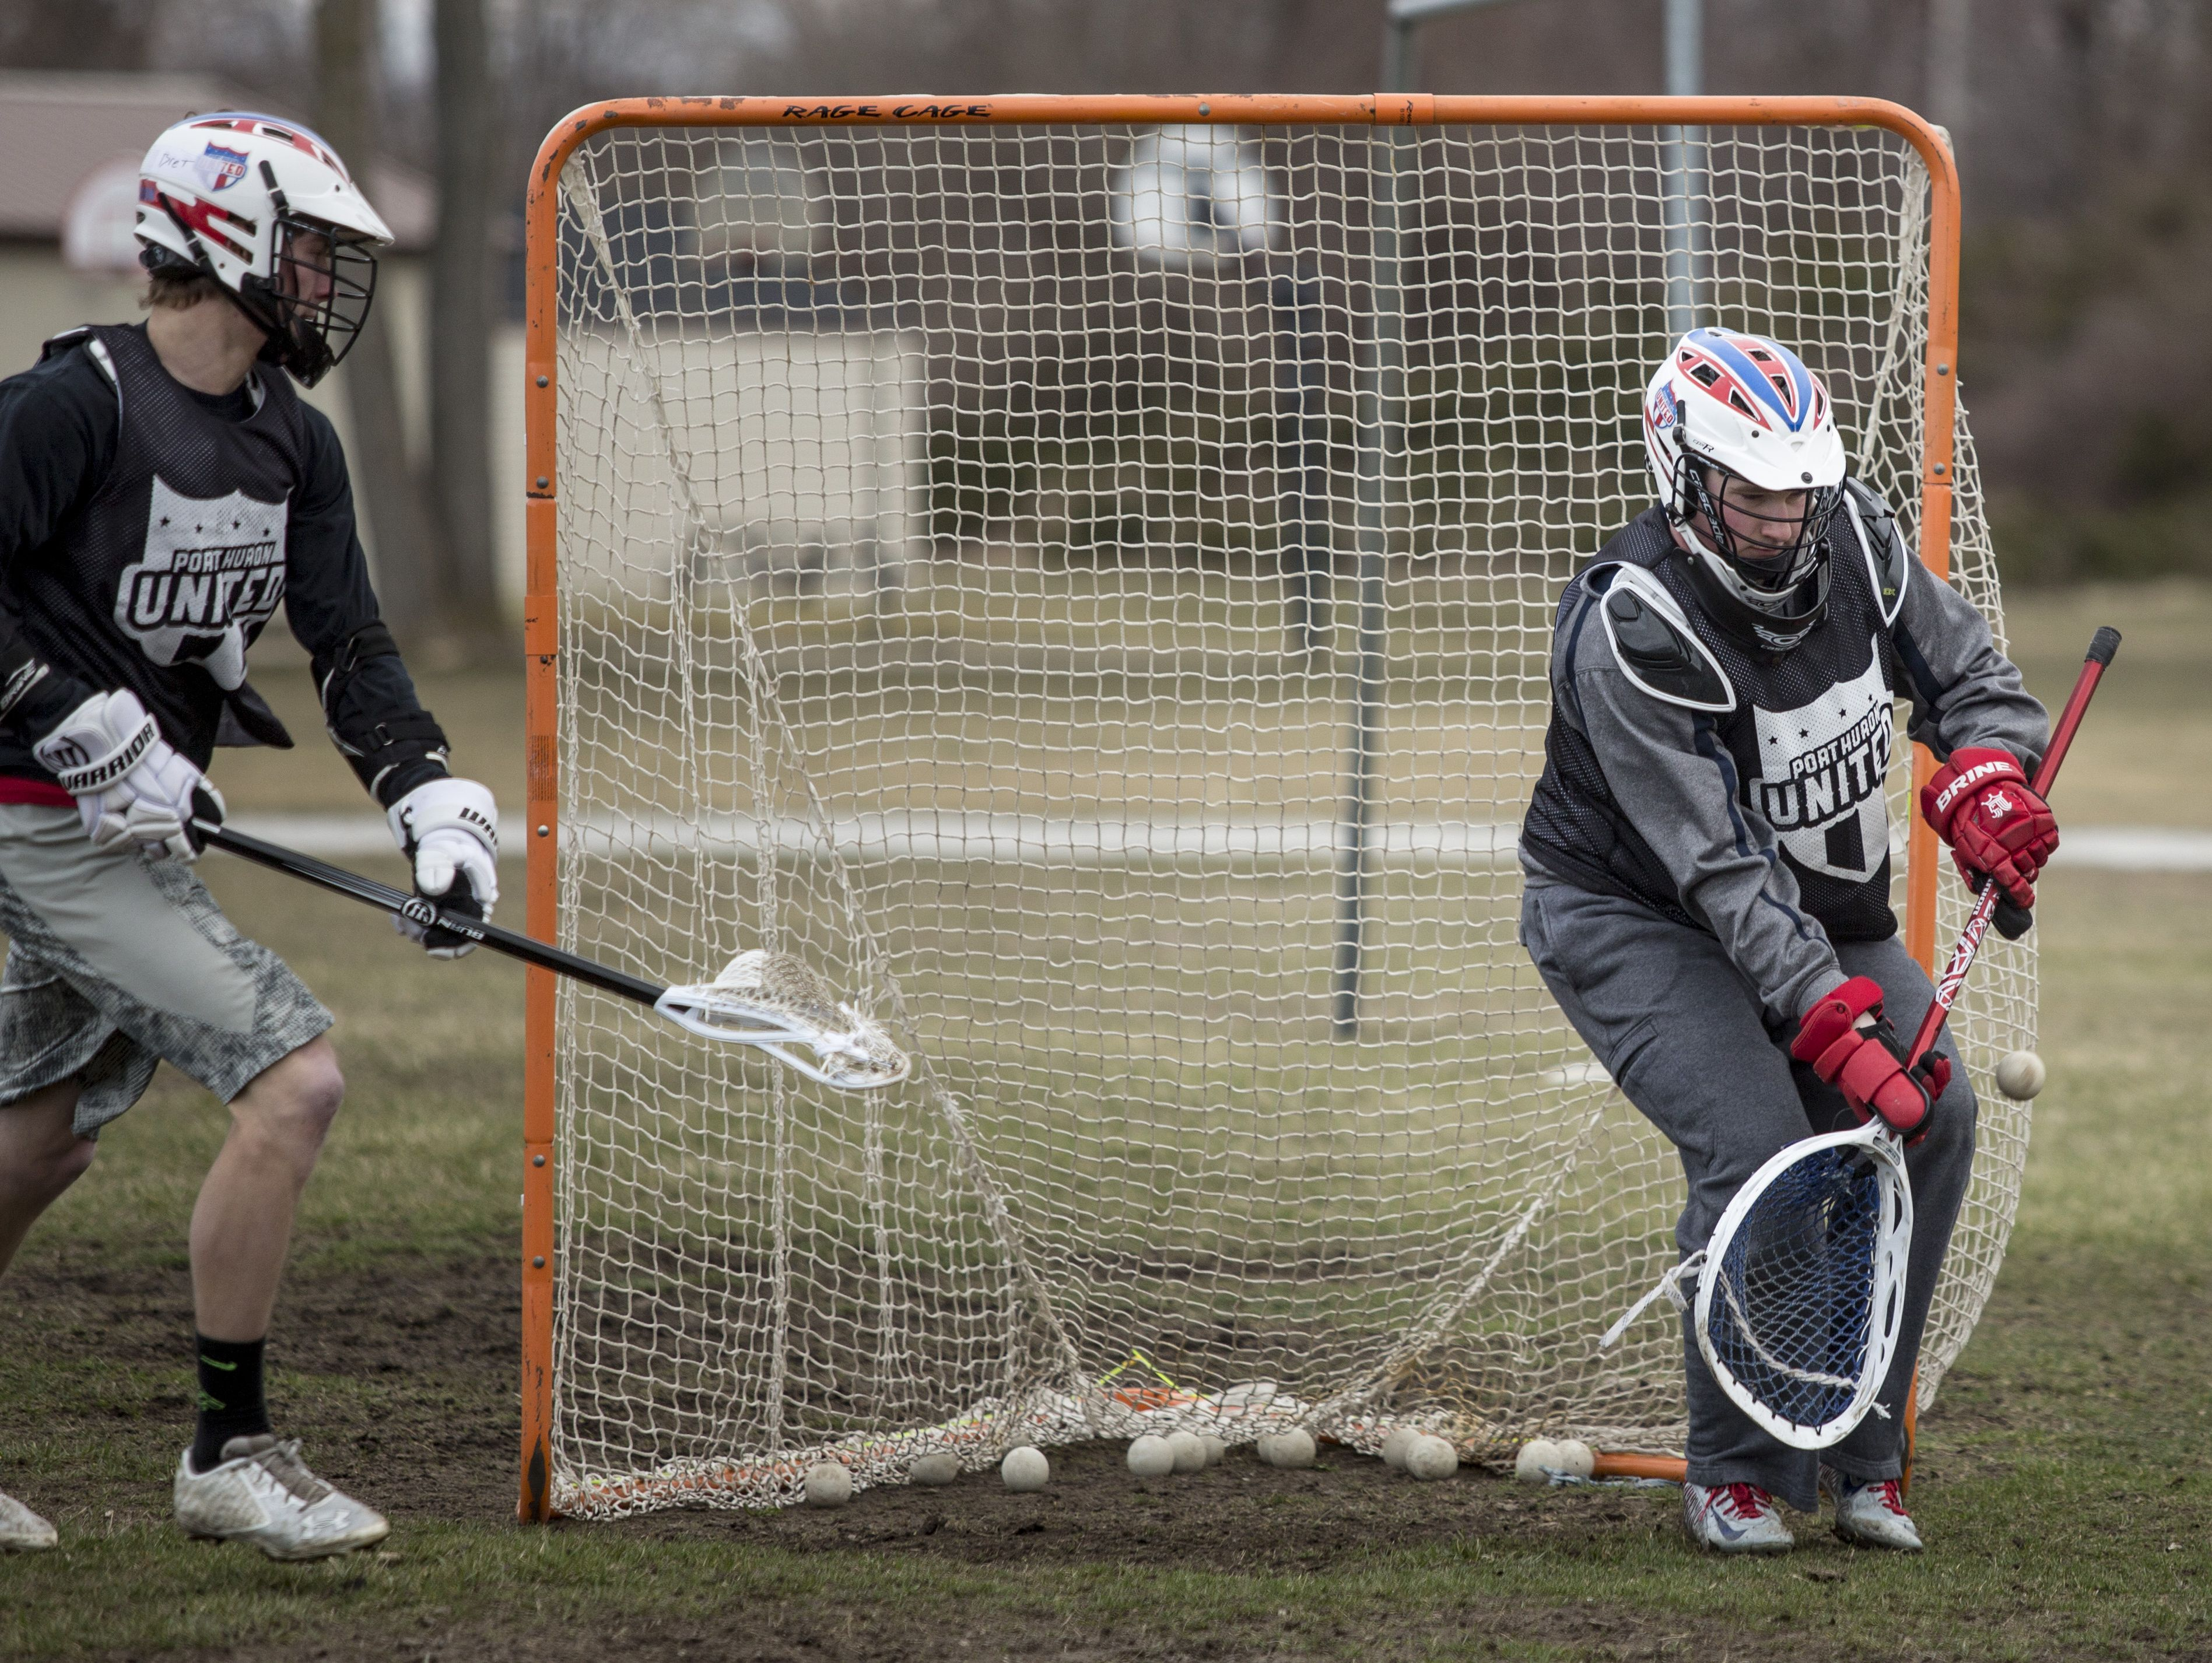 Port Huron Unified senior Shane Sheridan blocks a shot during practice Friday, March 18, 2016 at Central Middle School.